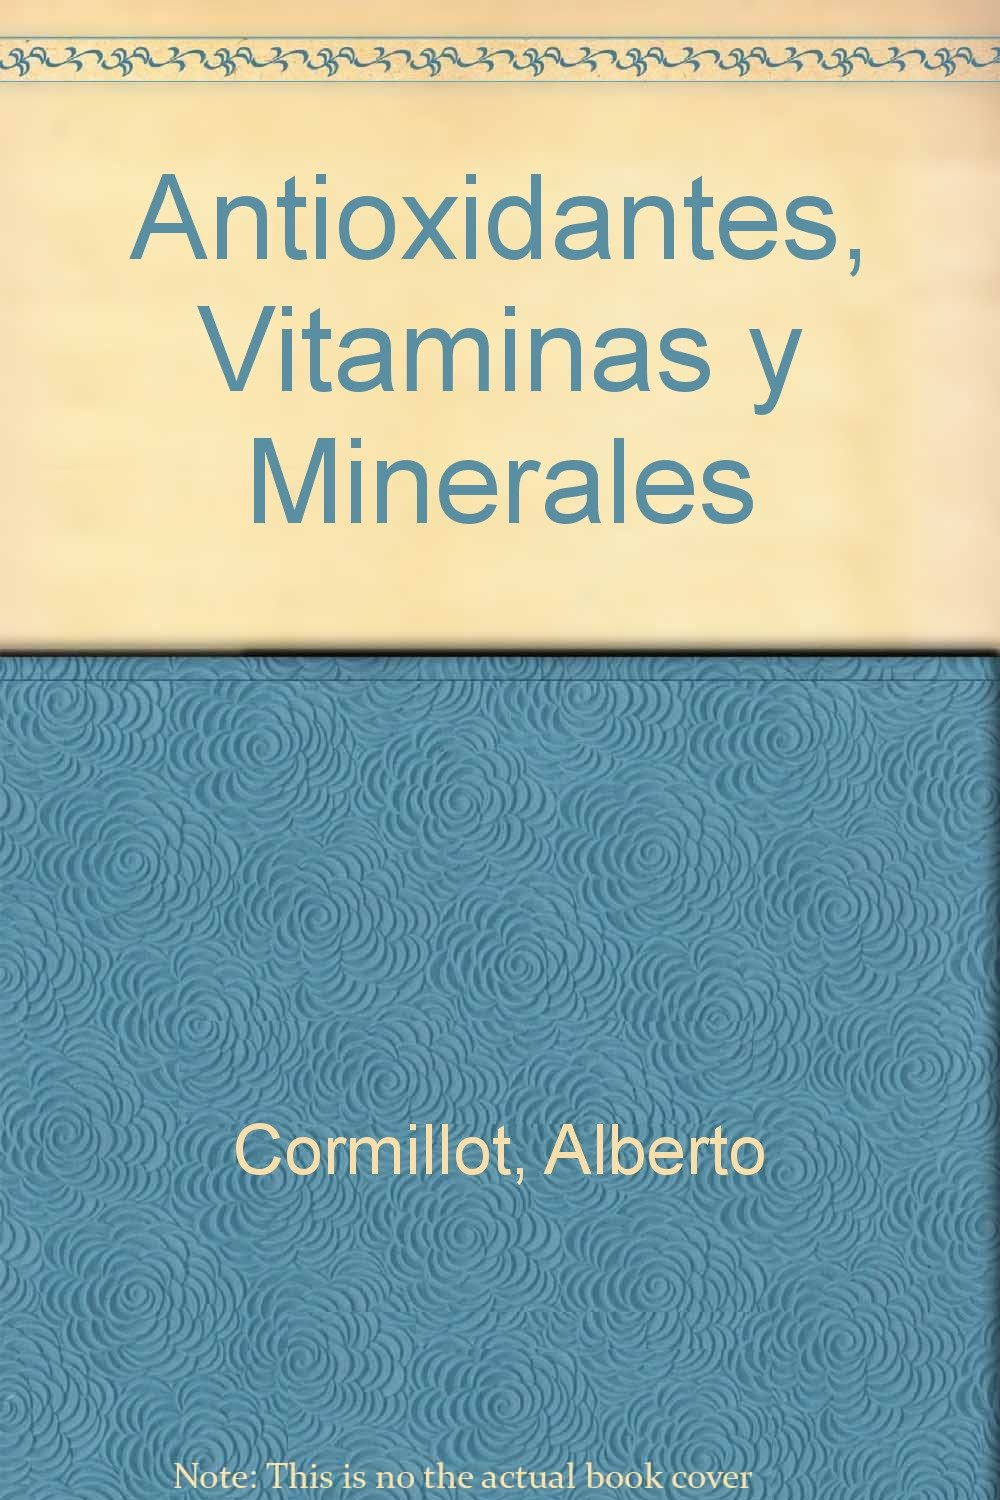 Antioxidantes, Vitaminas y Minerales (Spanish Edition): Alberto Cormillot: 9789506392949: Amazon.com: Books